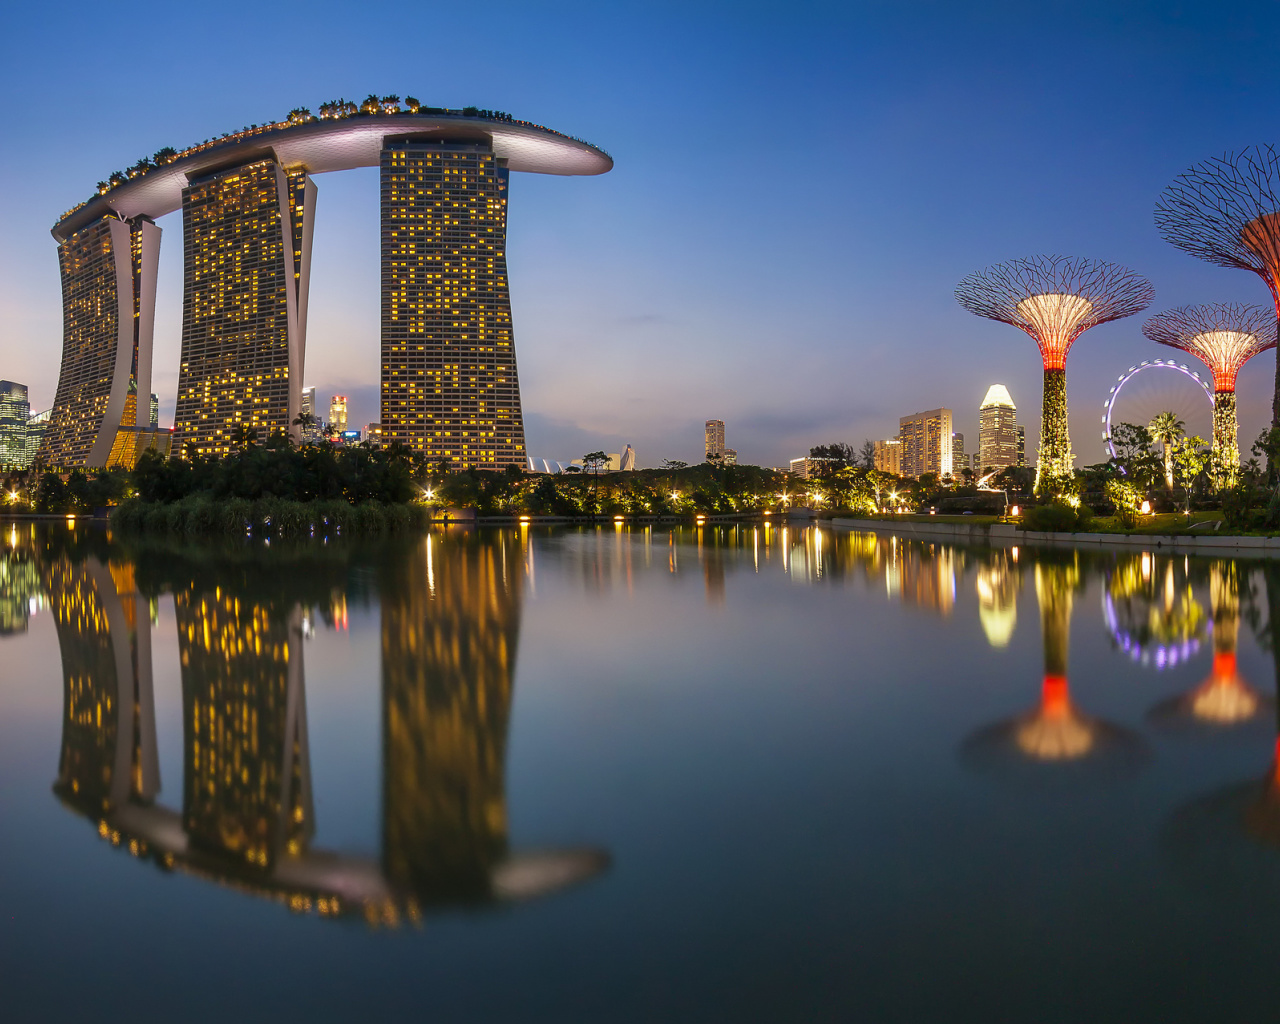 Sfondi Singapore Marina Bay Sands Tower 1280x1024